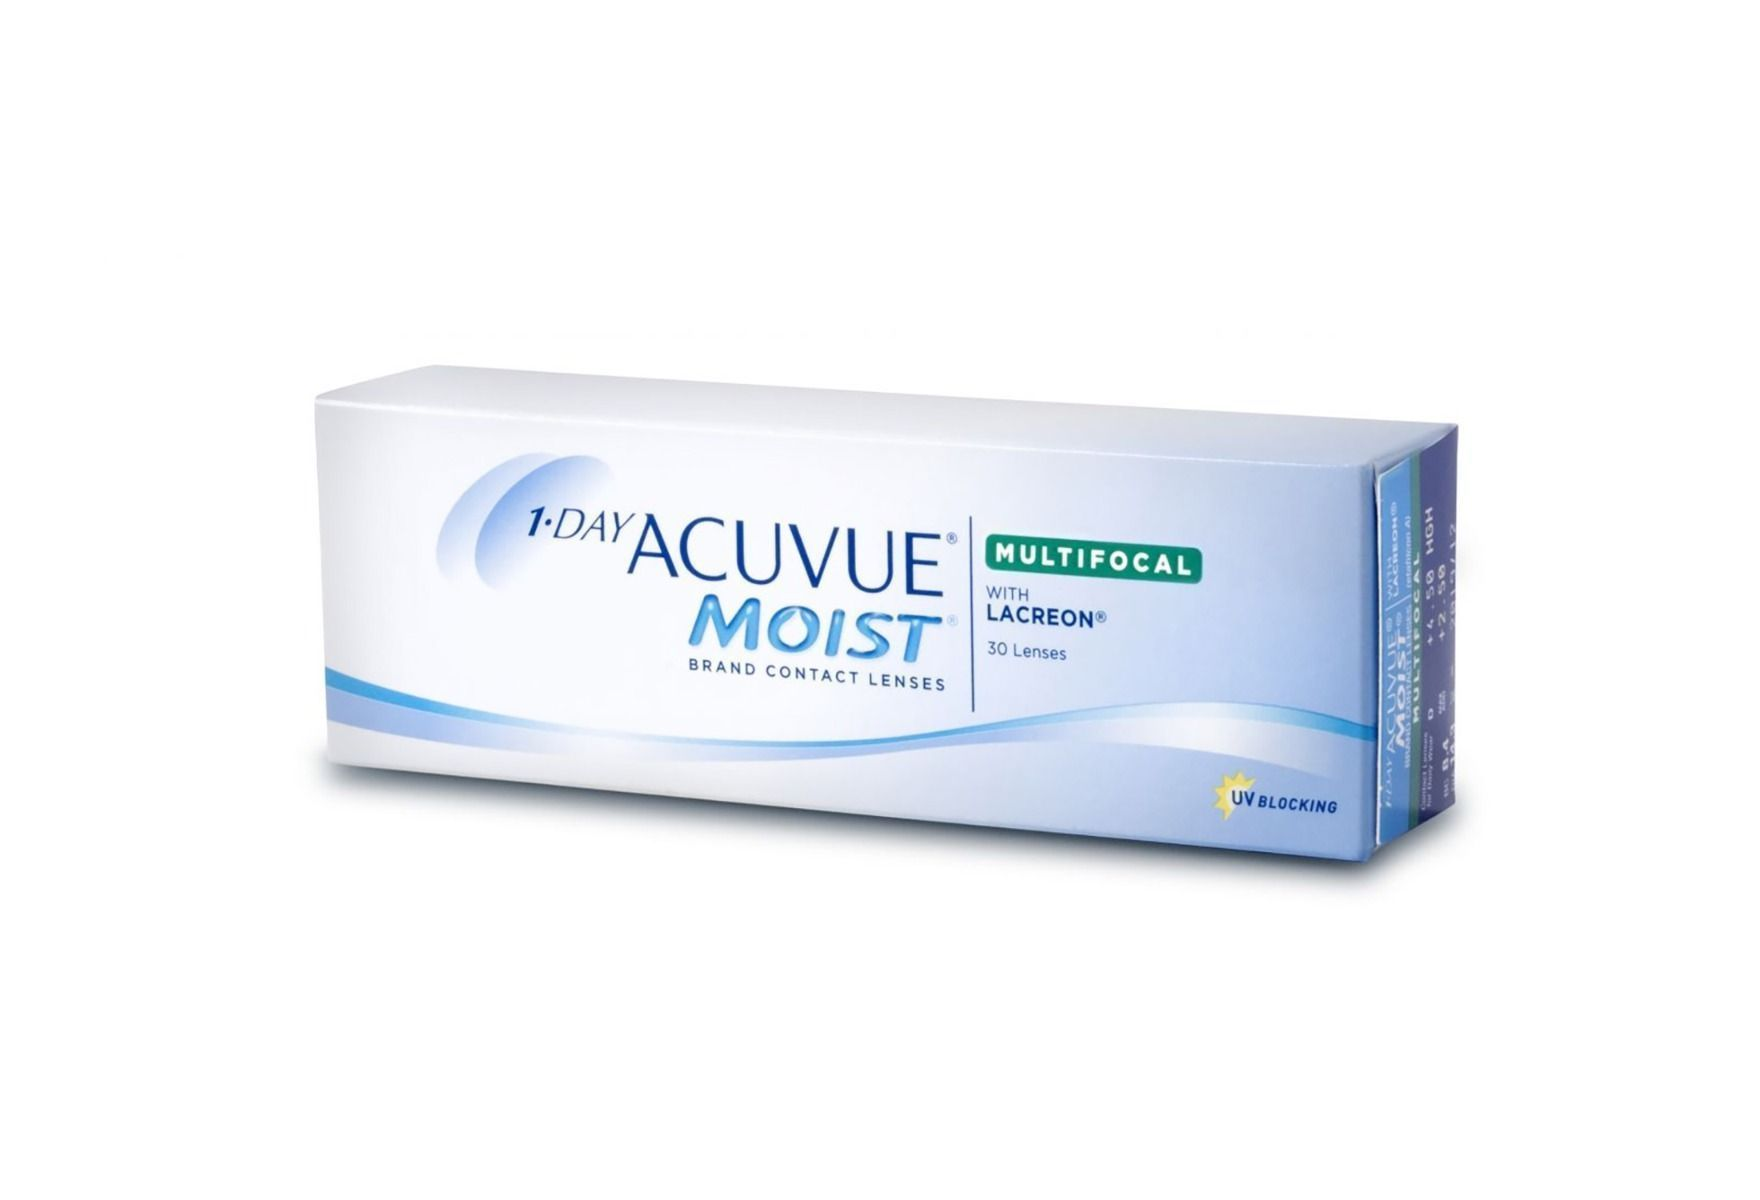 1-DAY ACUVUE MOIST MULTIFOCAL 30 stk